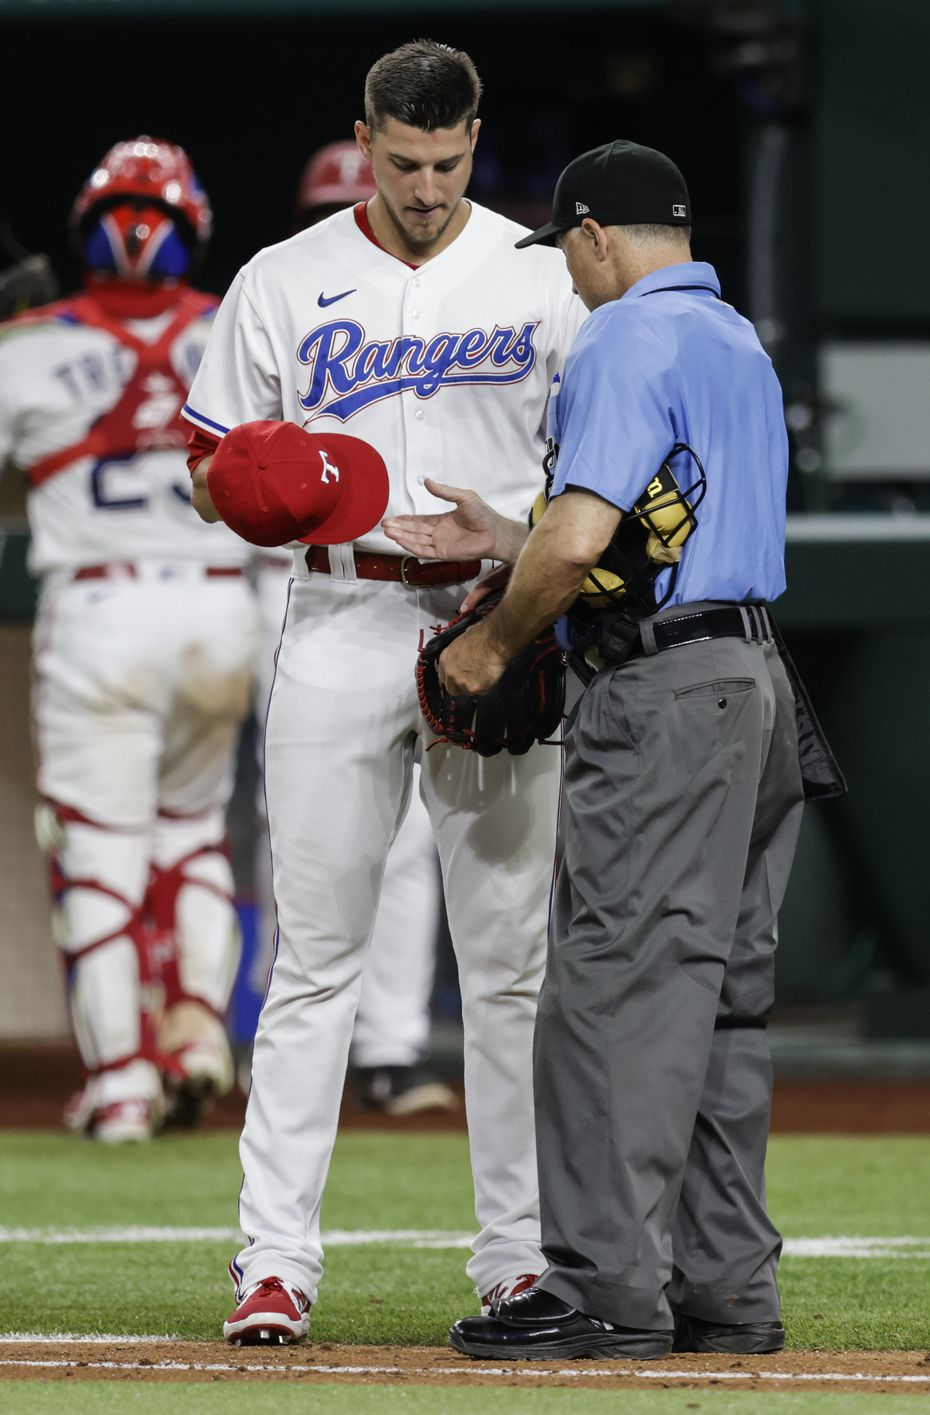 Home plate umpire Dan Iassogna inspects Texas Rangers relief pitcher Brett Martin's (59) glove and hat during the seventh inning of a baseball game against the Oakland Athletics in Arlington, Monday, June 21, 2021.